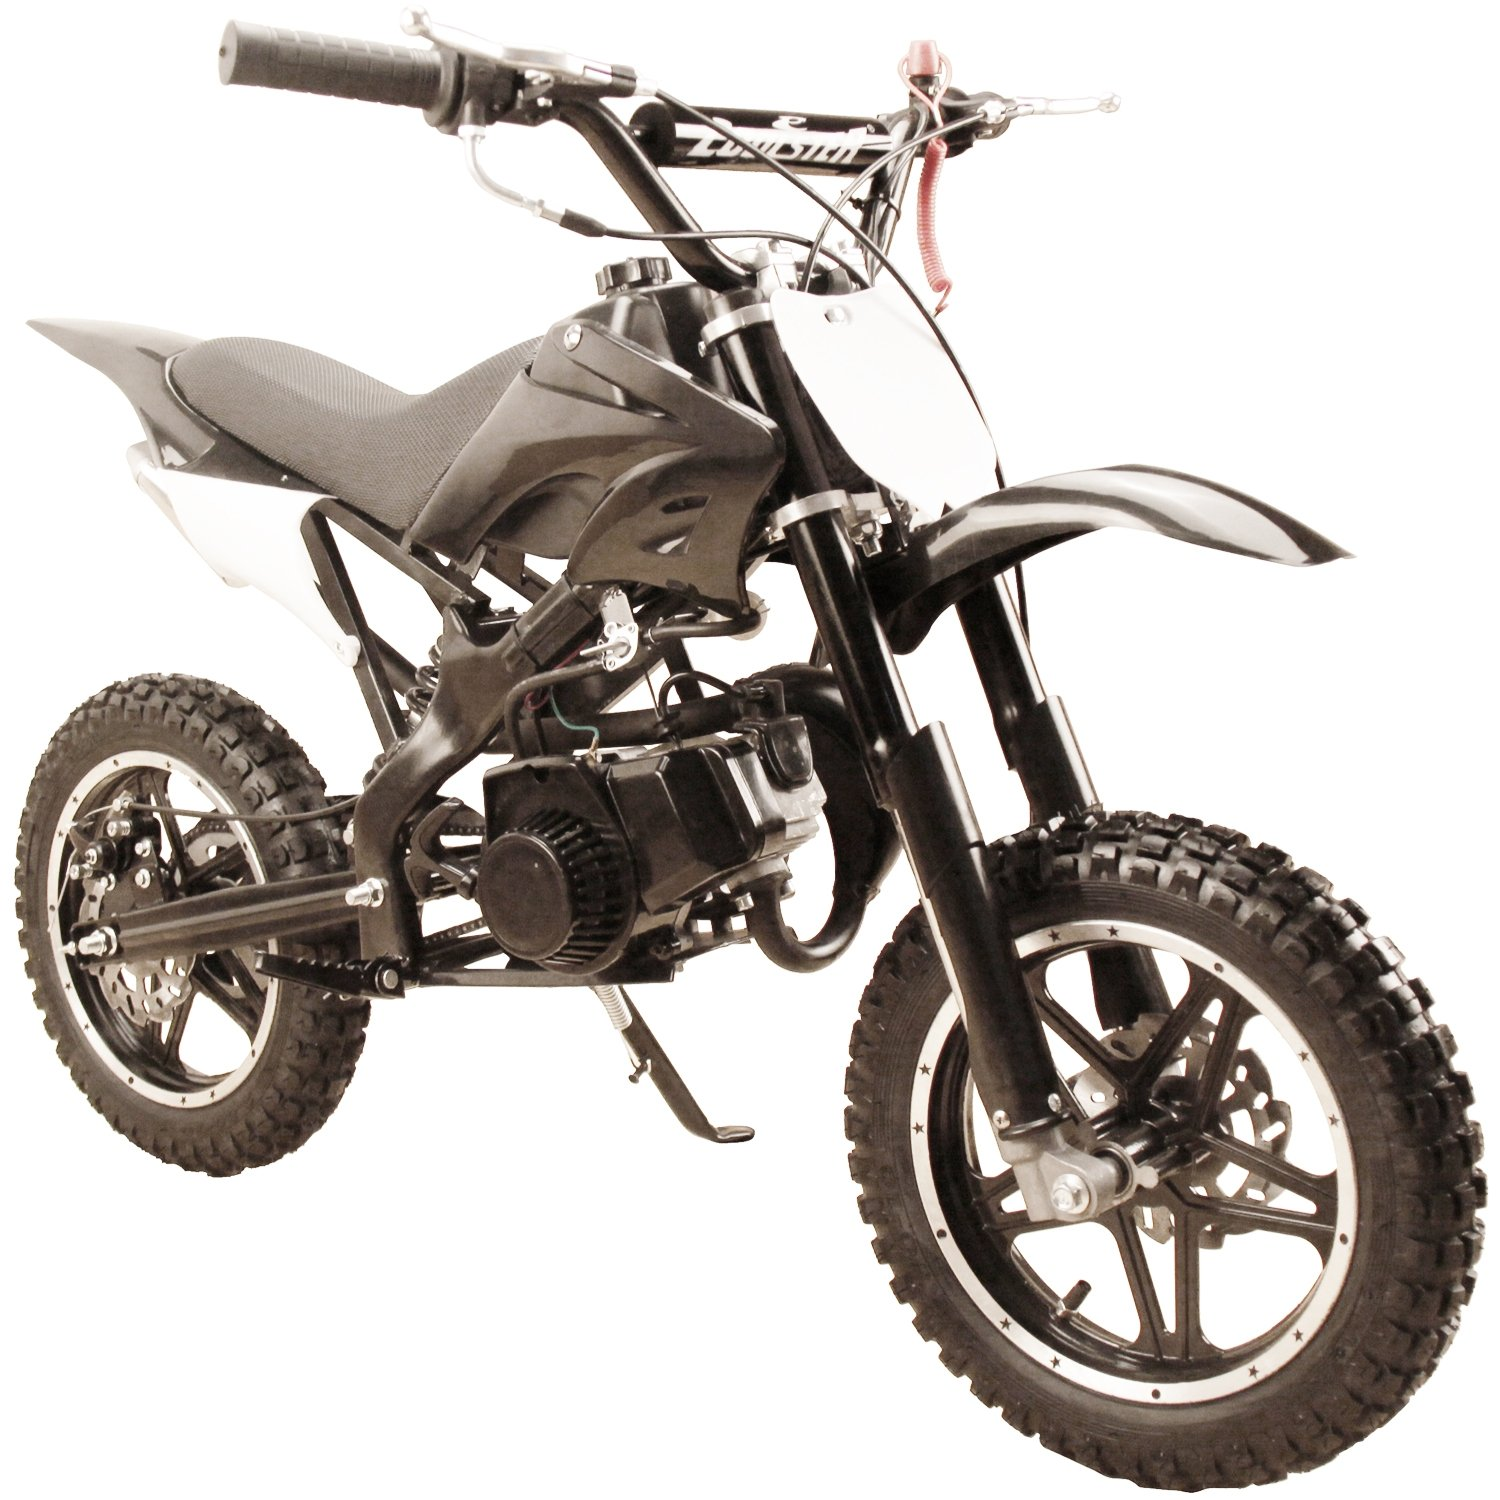 49cc 50cc High Performance Black 2-Stroke Gas Motorized Mini Dirt Pit Bike by Flying Horse